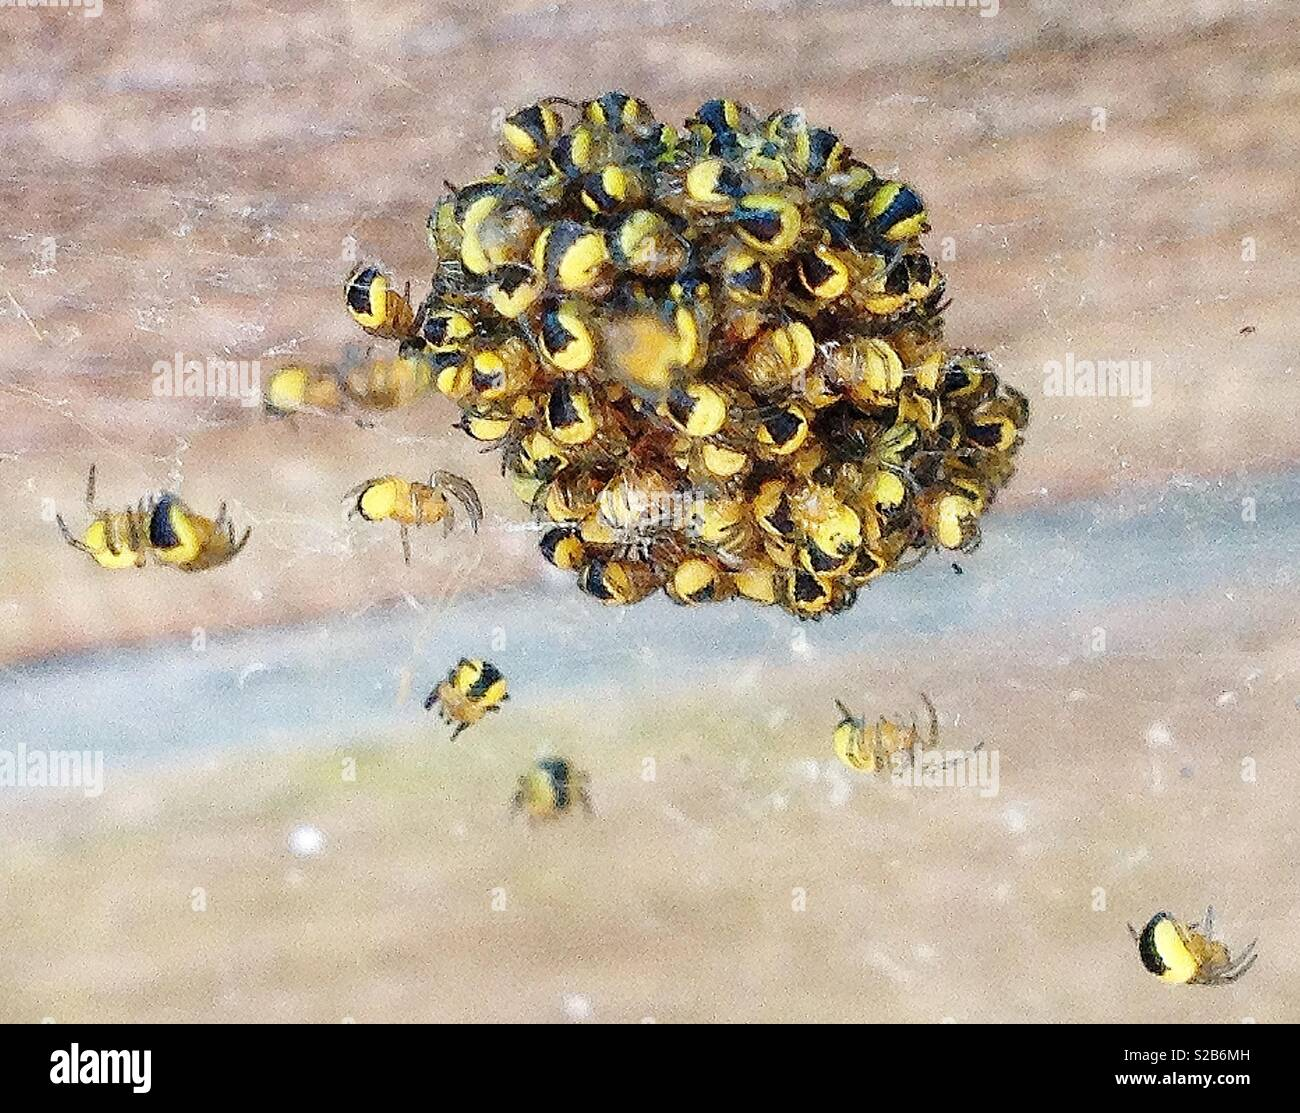 Garden spiderlings clustered together on a web for protection - Stock Image